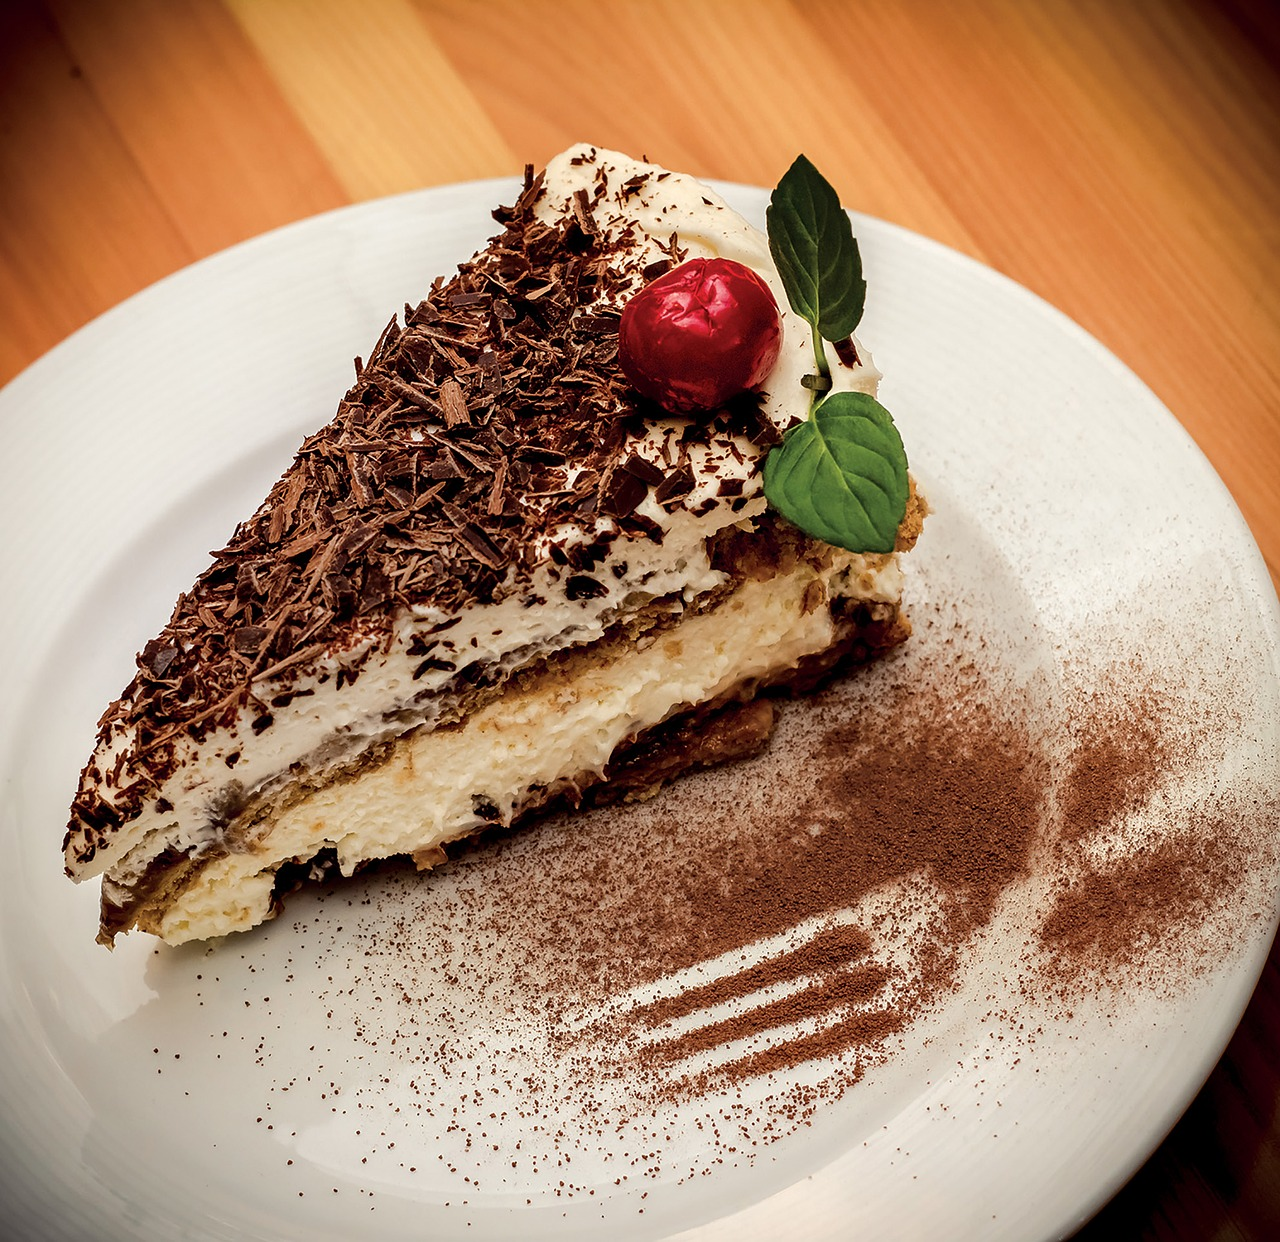 Hard work deserves cake (Image Credit: Pixabay)